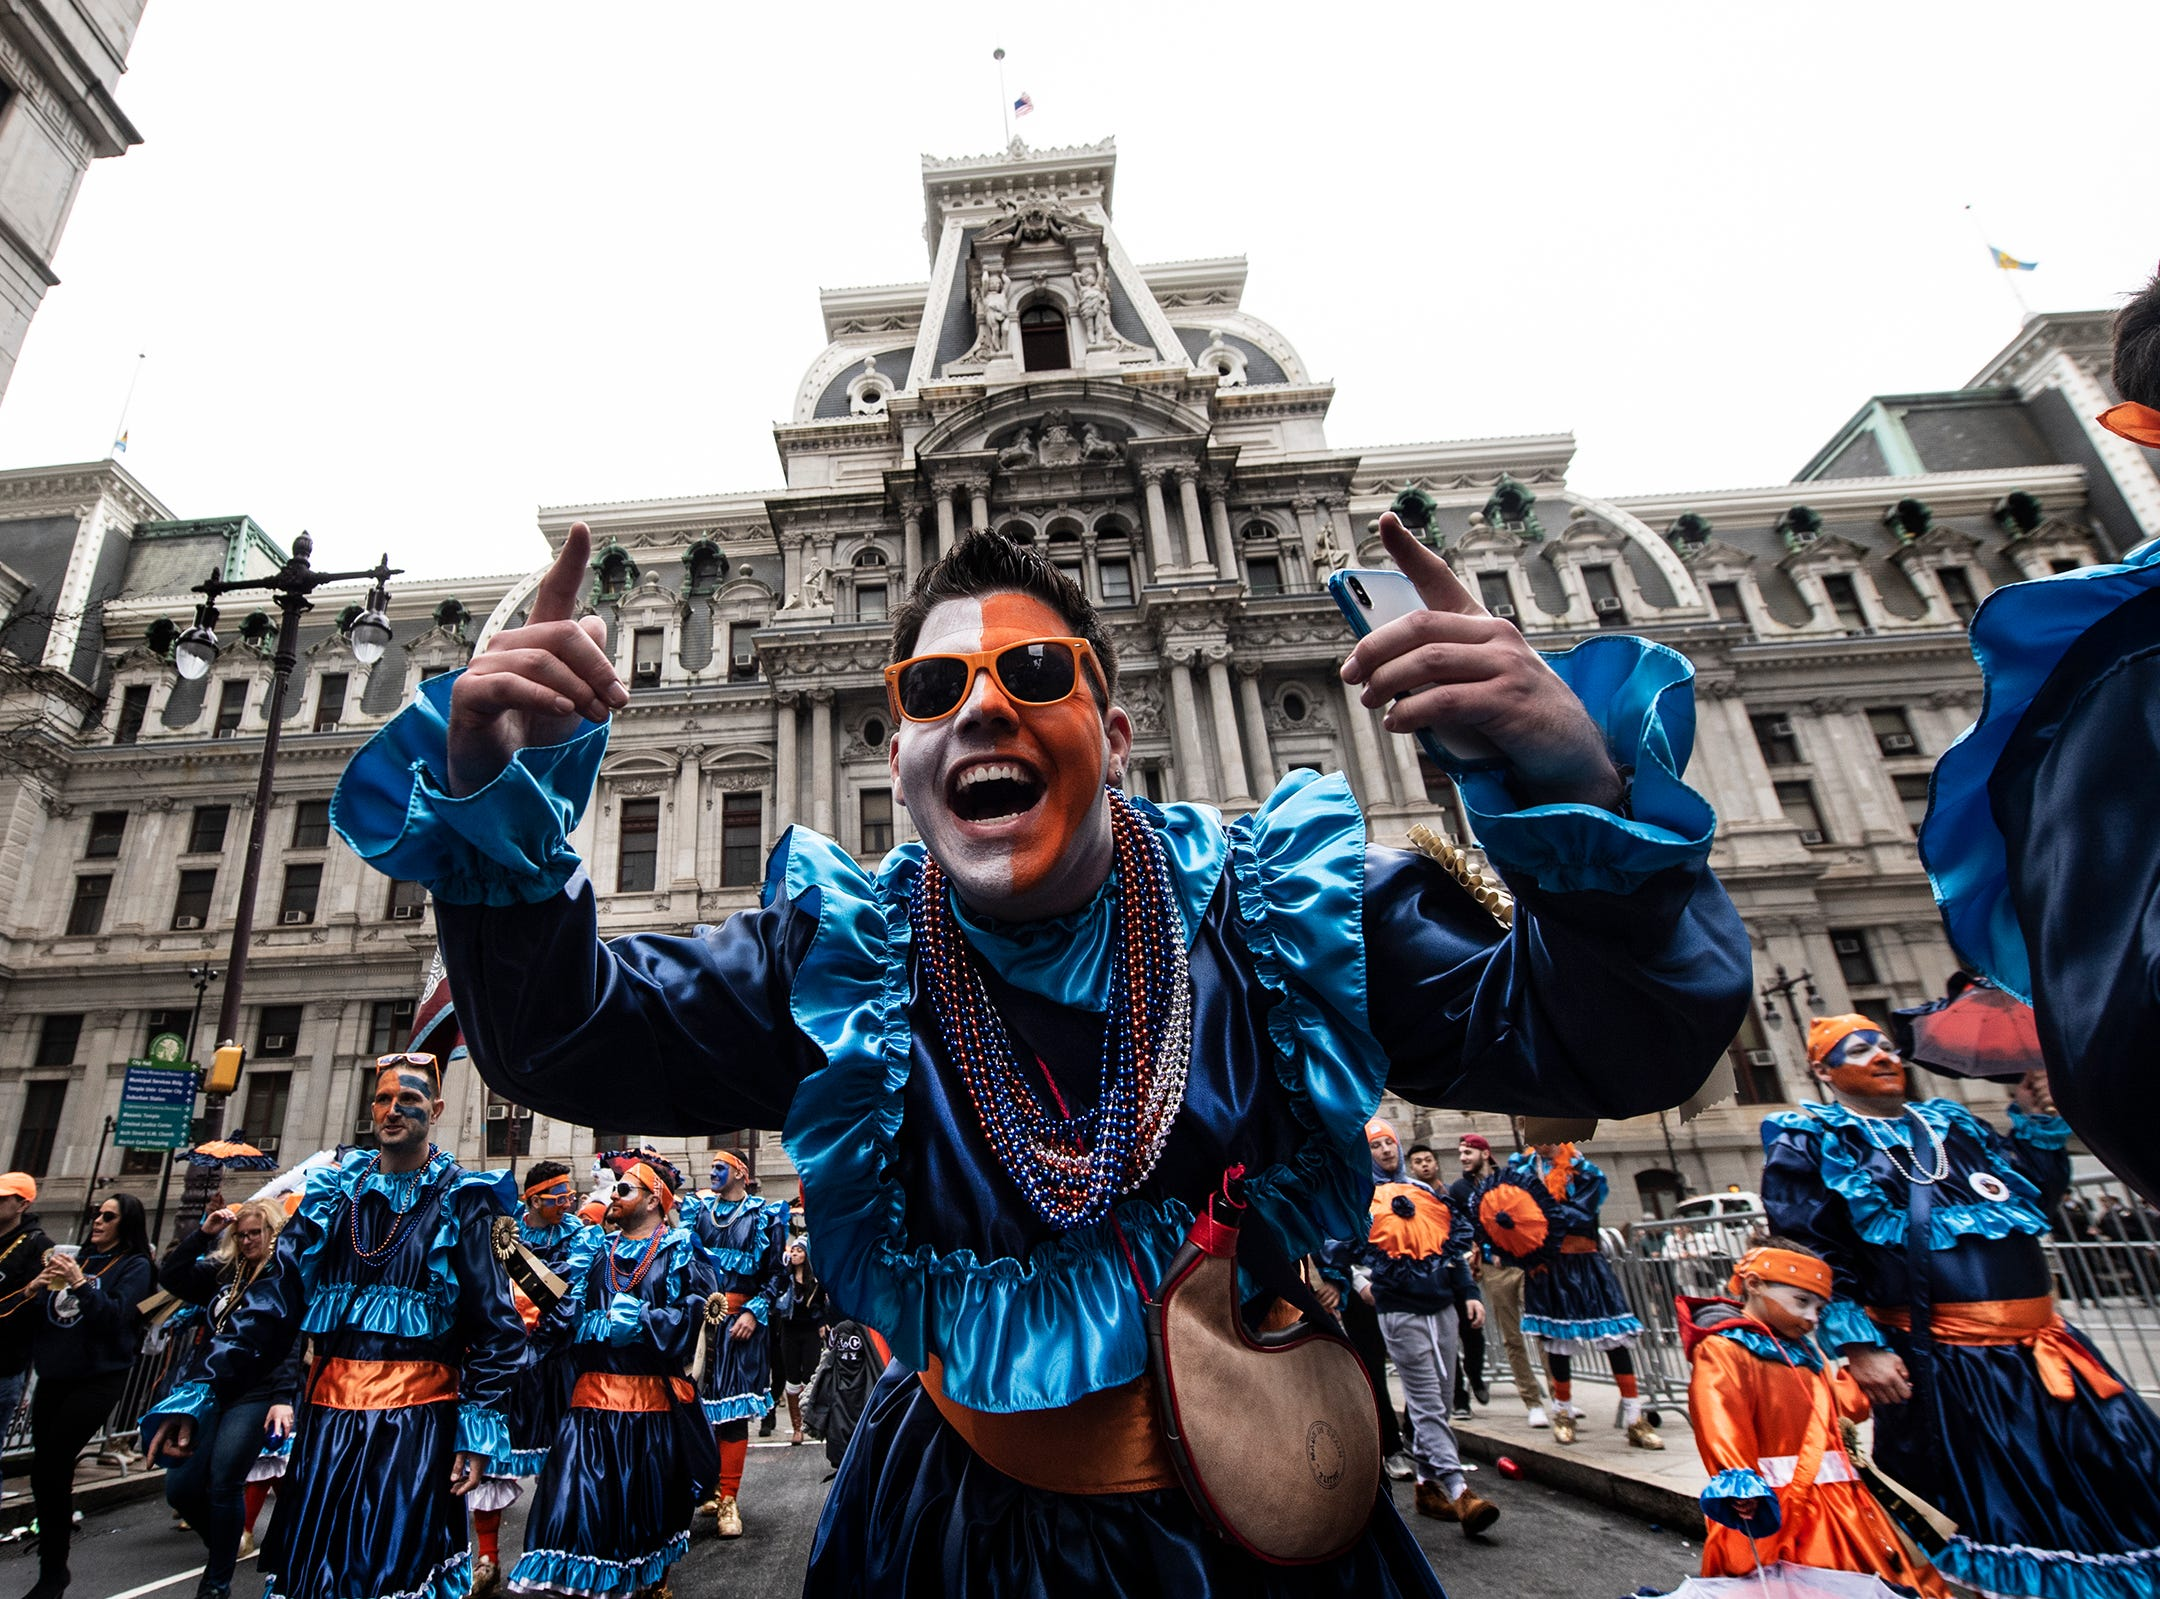 Members of The Holy Rollers N.Y.B., struts down Broad Street during the Mummers Parade, Tuesday, Jan. 1, 2019, in Philadelphia. (David Maialetti/The Philadelphia Inquirer via AP)